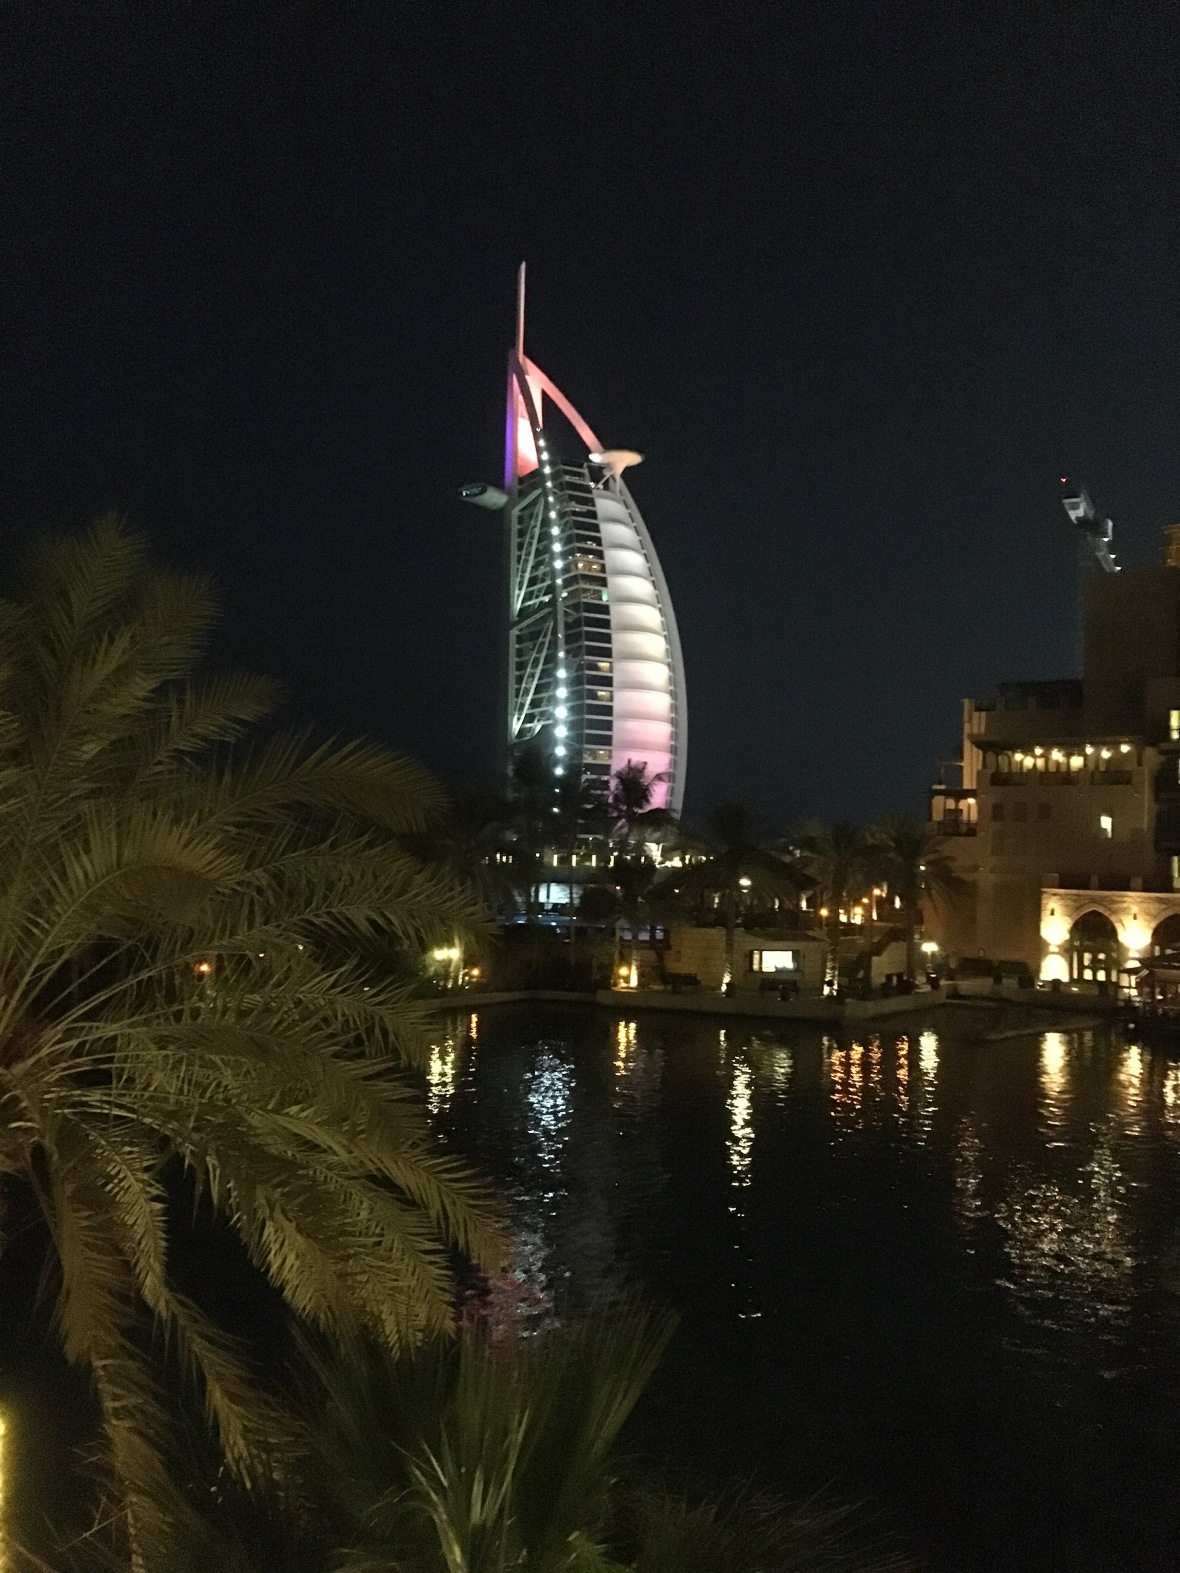 Burj Al Arab At Night From Bahri Bar, Madinat Jumeirah, Dubai, UAE